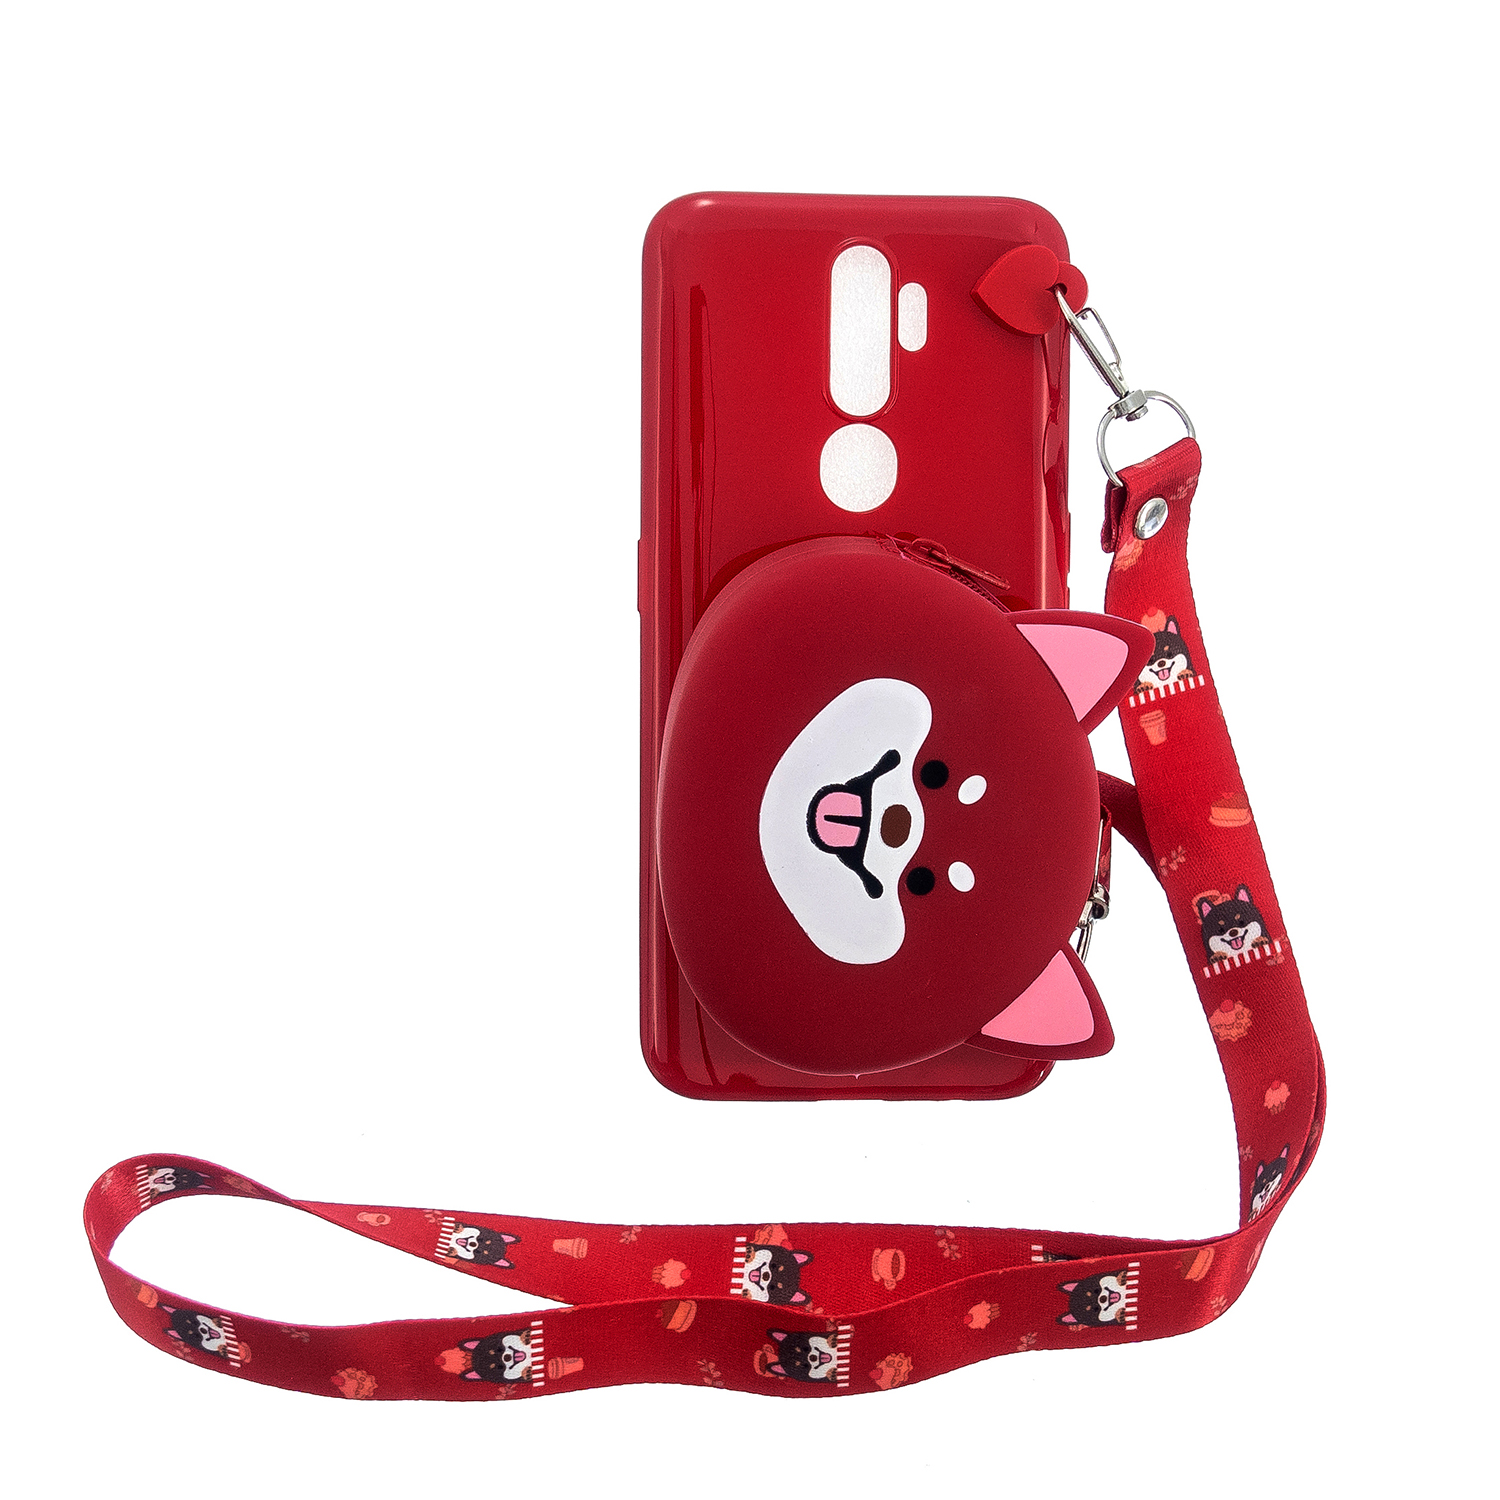 For OPPO A83/A9 2020 Cellphone Case Mobile Phone TPU Shell Shockproof Cover with Cartoon Cat Pig Panda Coin Purse Lovely Shoulder Starp  Red